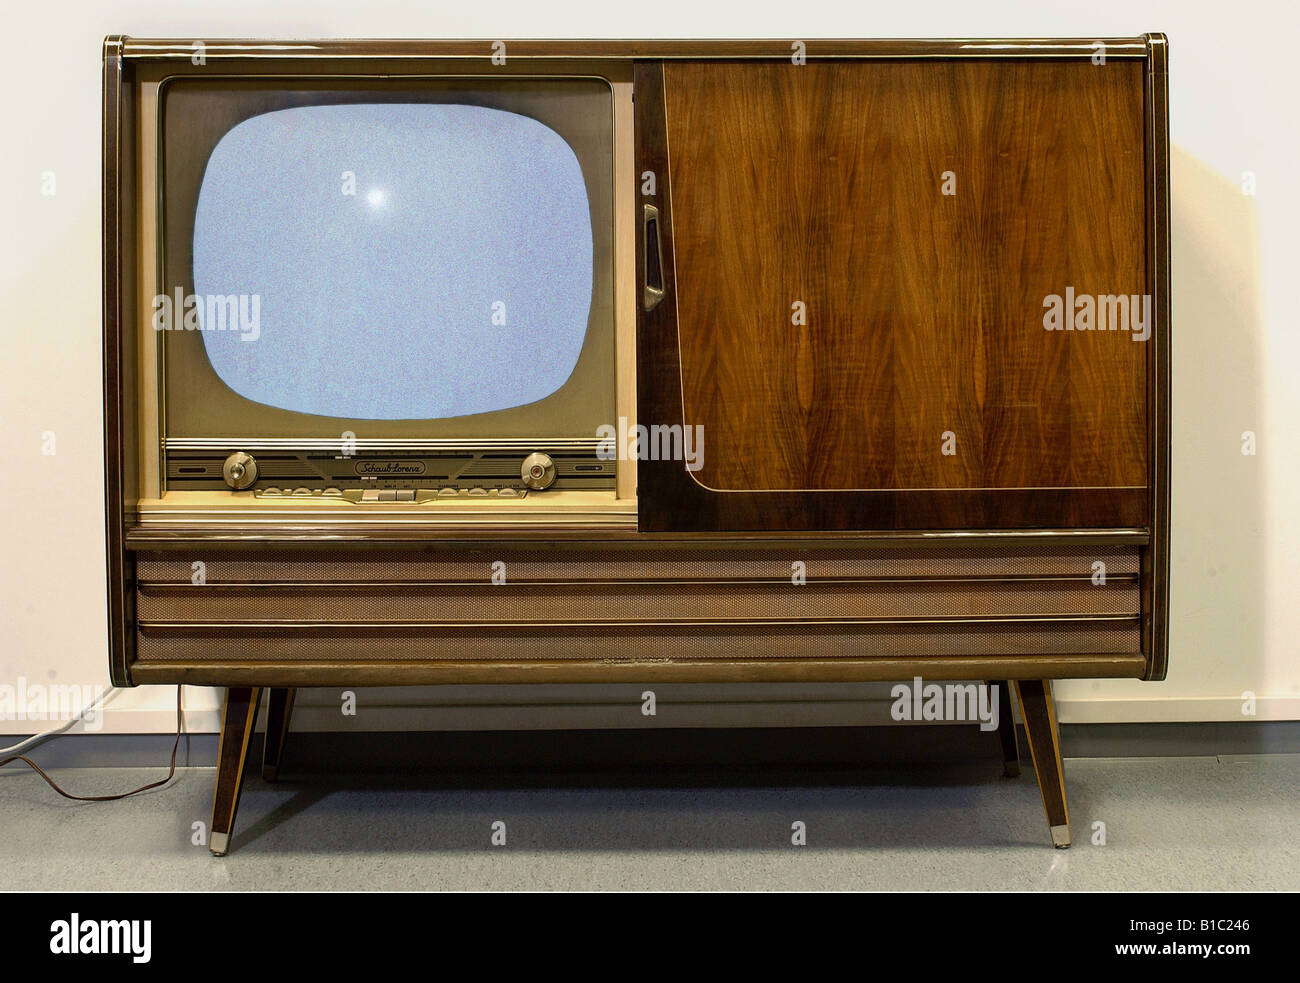 broadcast television tv set models model schaub lorenz triology stock photo 18090134 alamy. Black Bedroom Furniture Sets. Home Design Ideas